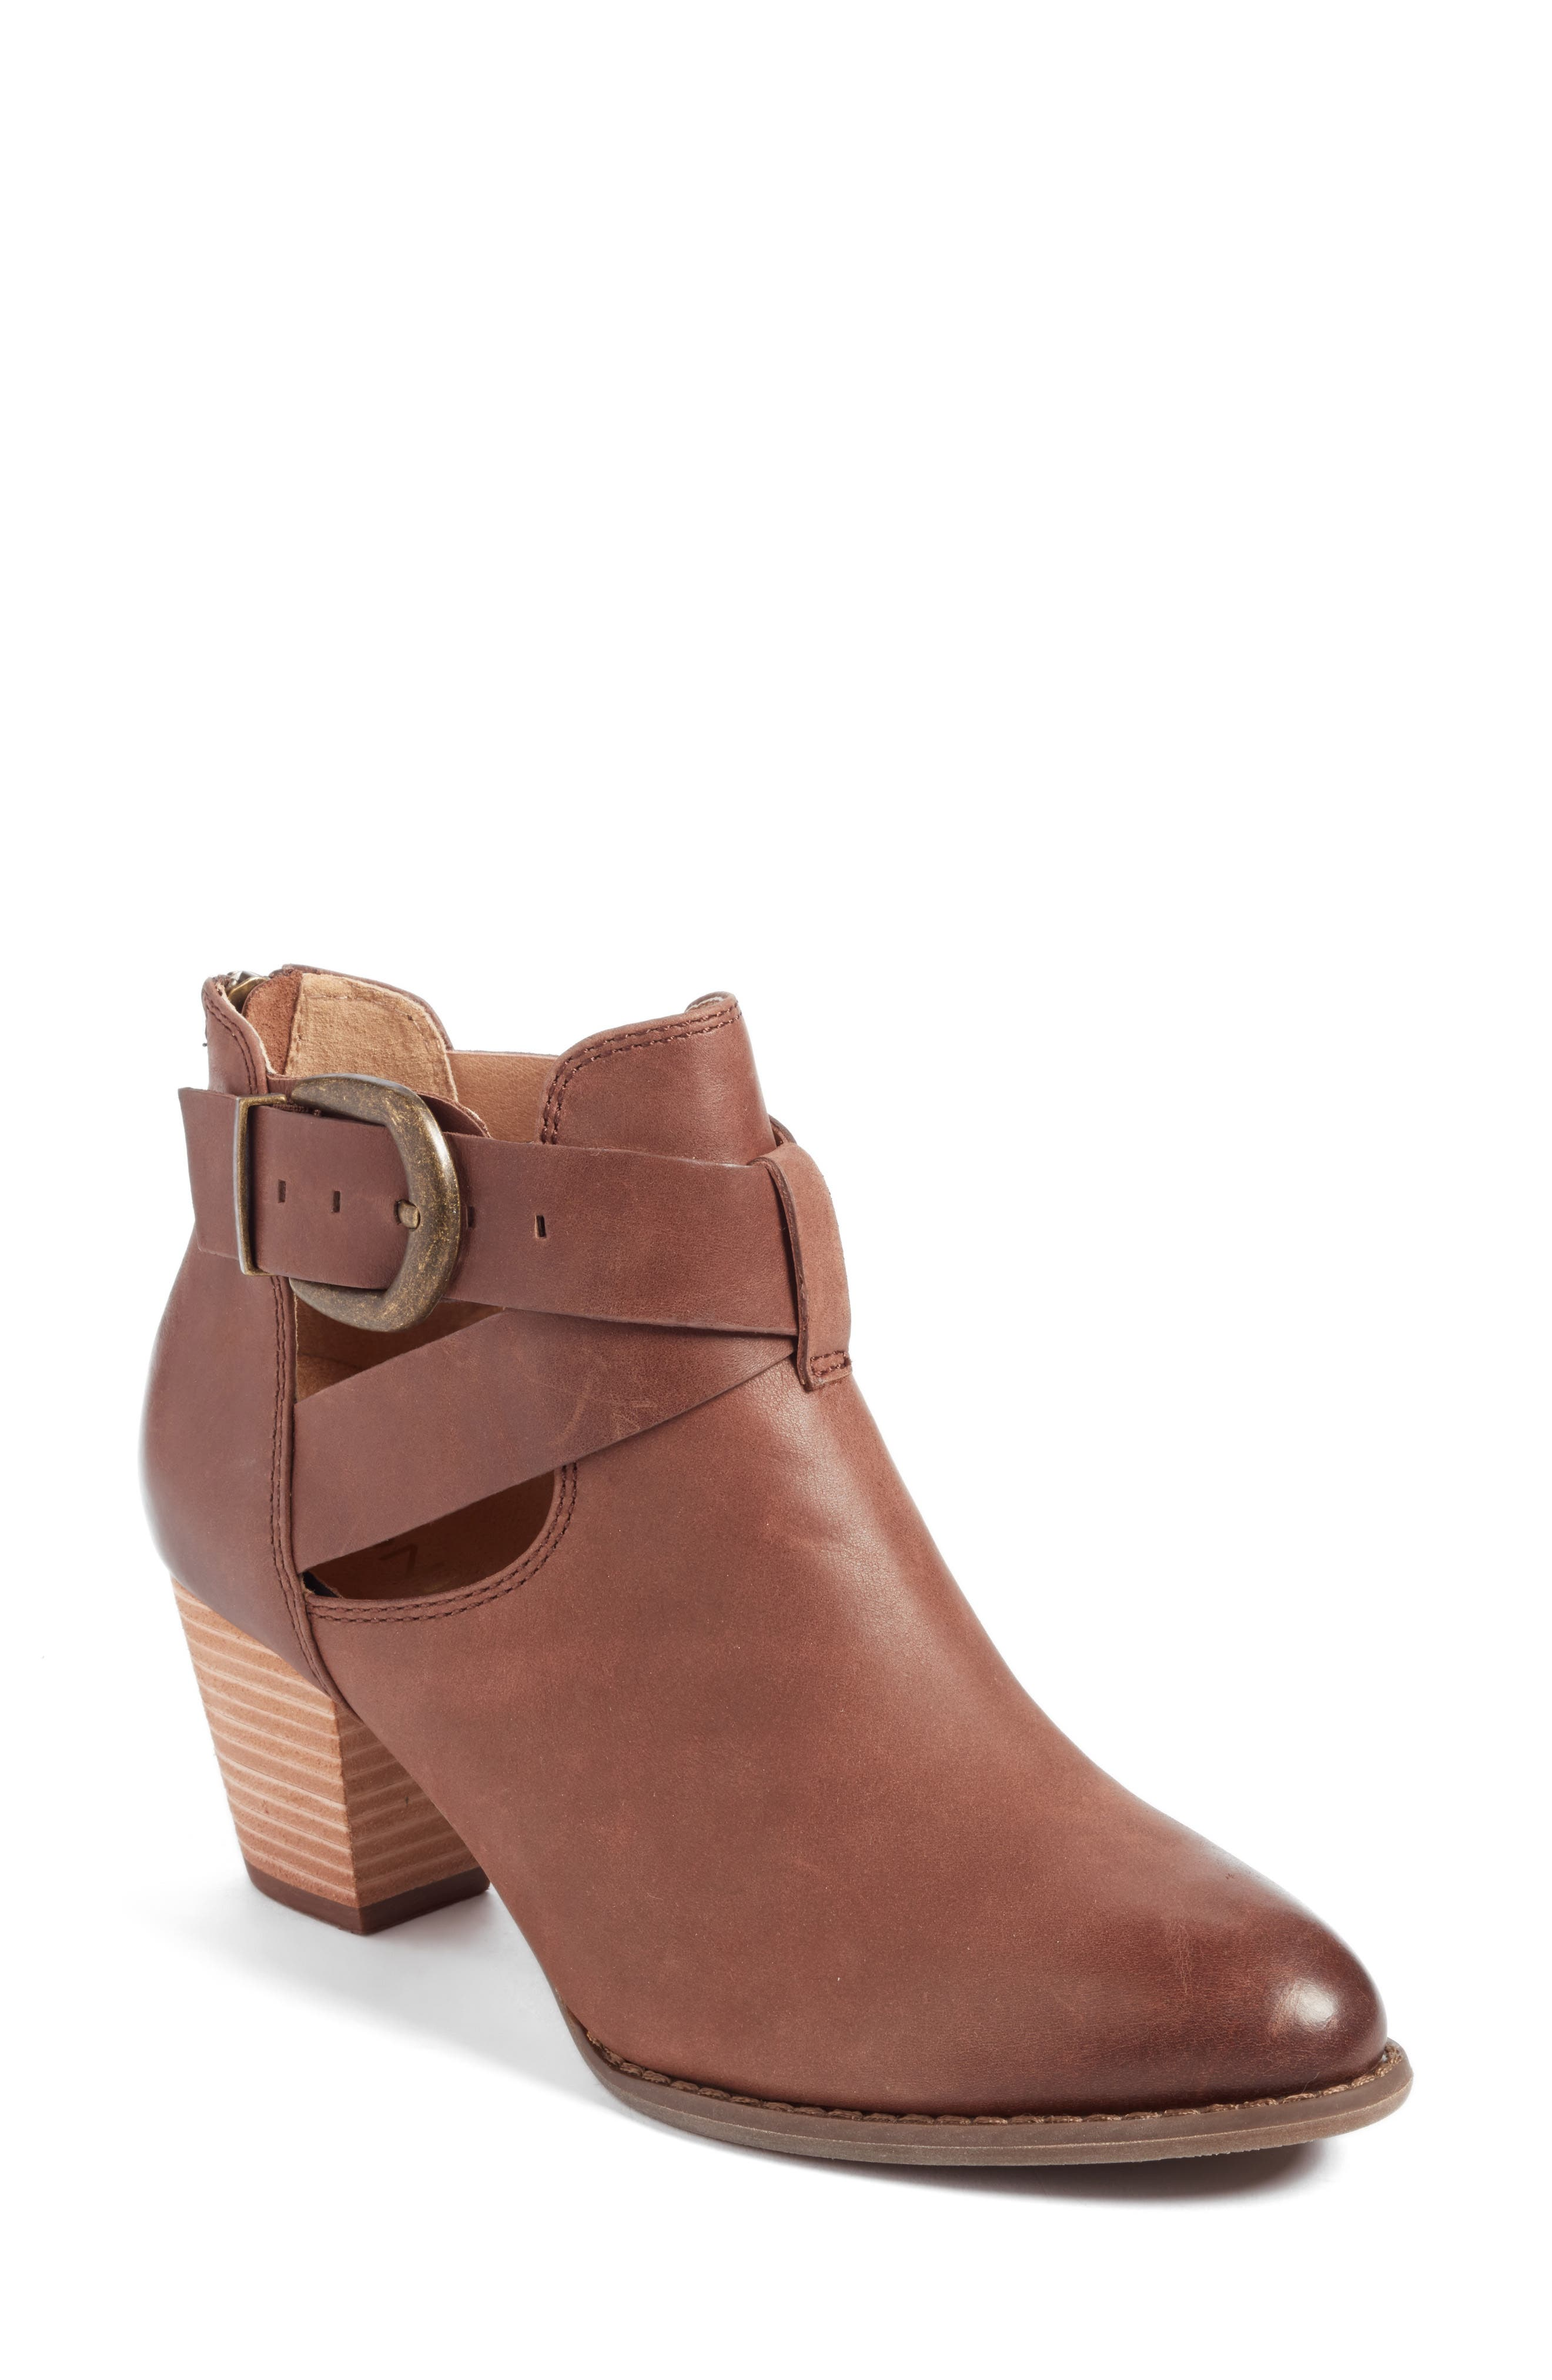 Alternate Image 1 Selected - Vionic Rory Buckle Strap Bootie (Women)